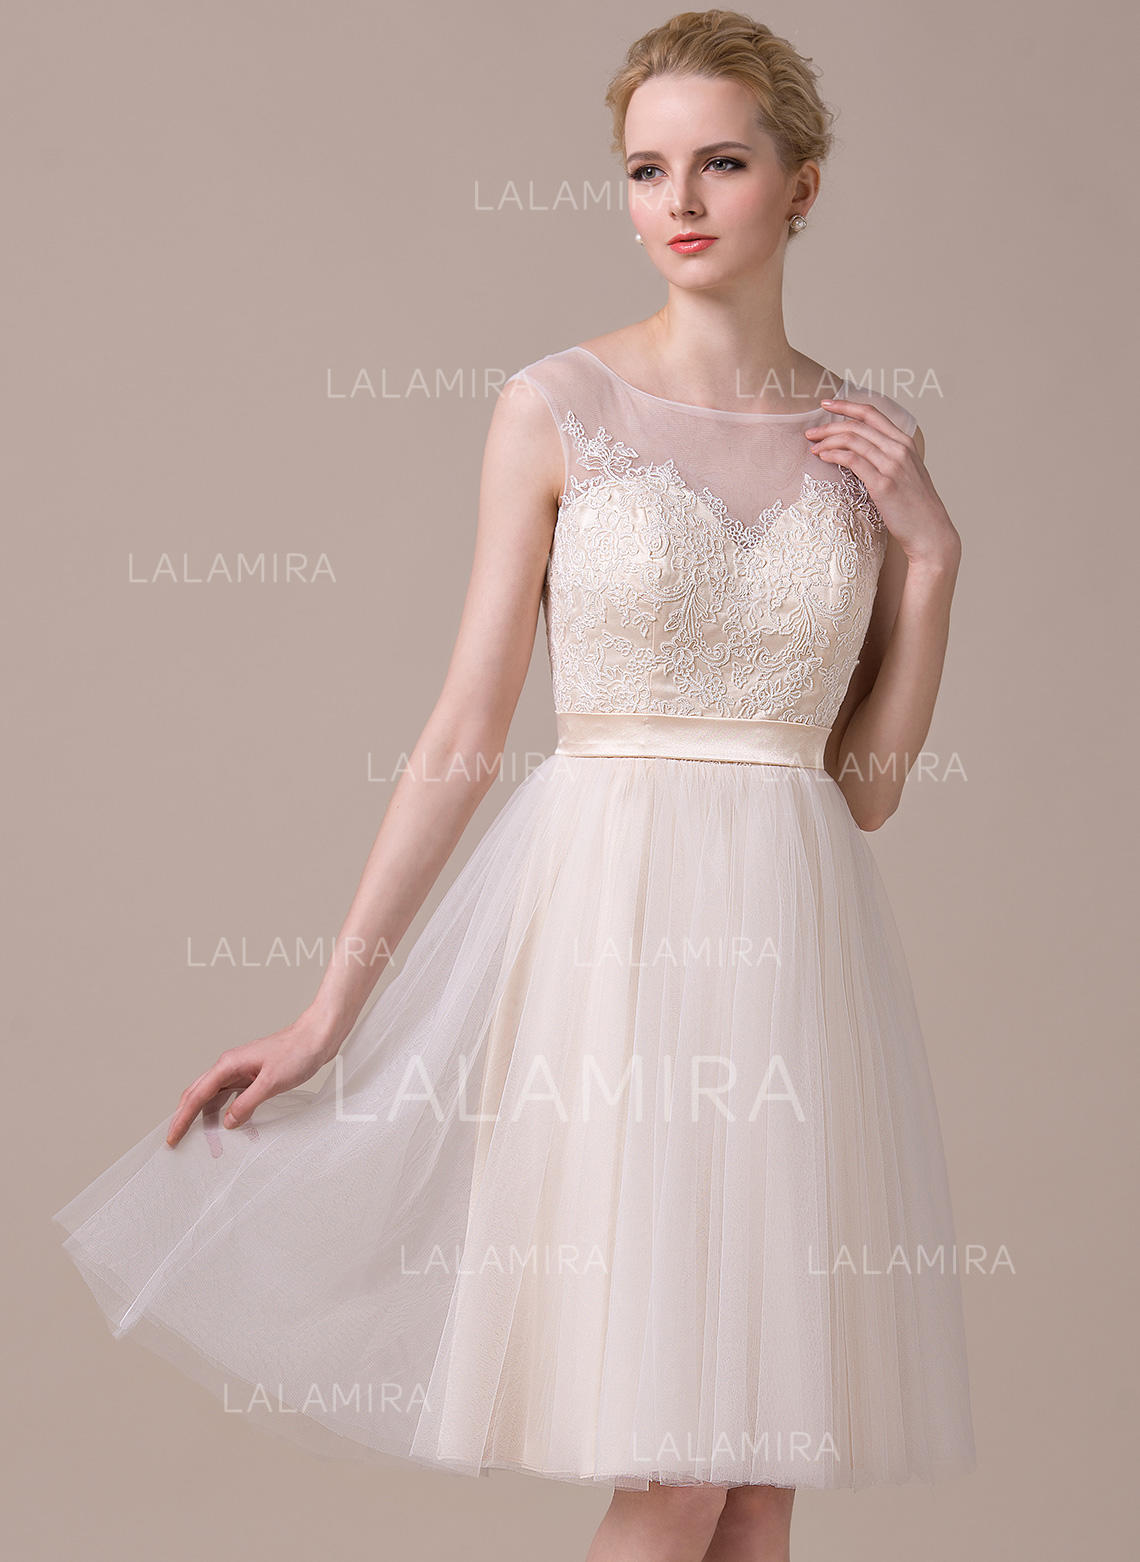 288ab760c62 A-Line/Princess Knee-Length Homecoming Dresses Scoop Neck Tulle Lace  Sleeveless (. Loading zoom